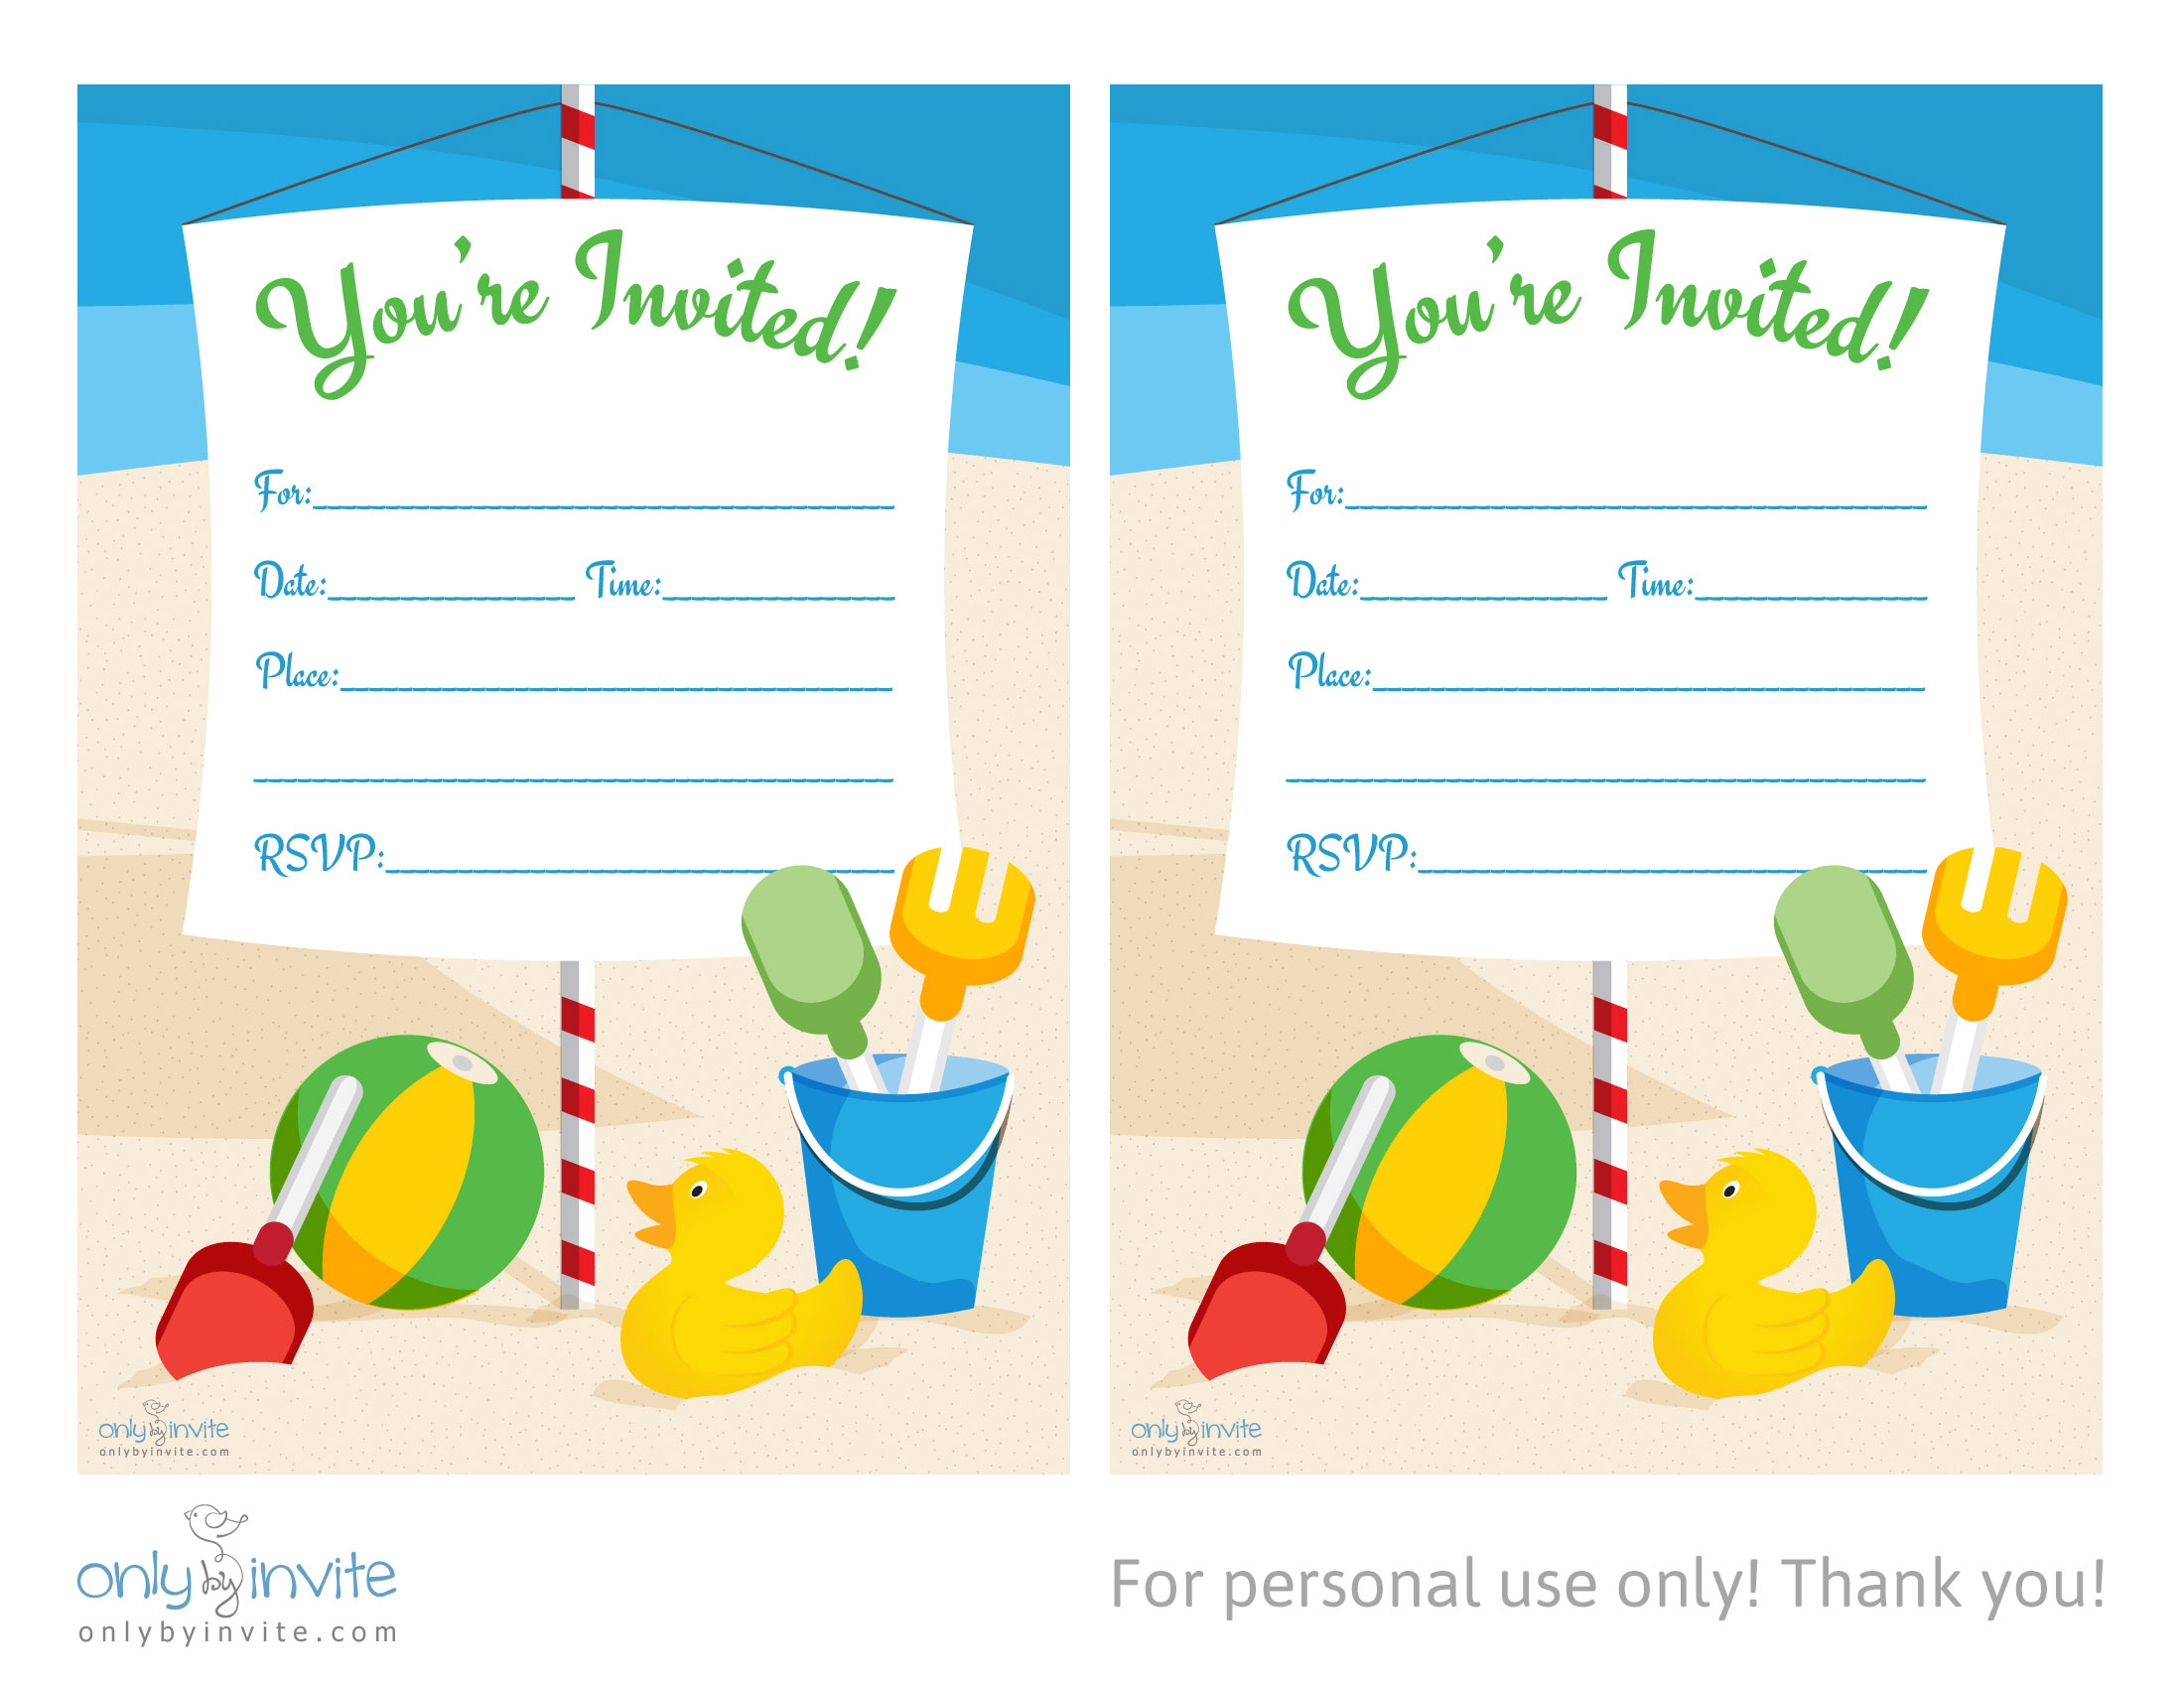 10th birthday invitation cards free printables ; 10Th-Birthday-Party-Invitations-is-one-of-the-best-idea-for-you-to-make-your-own-birthday-Invitation-design-15